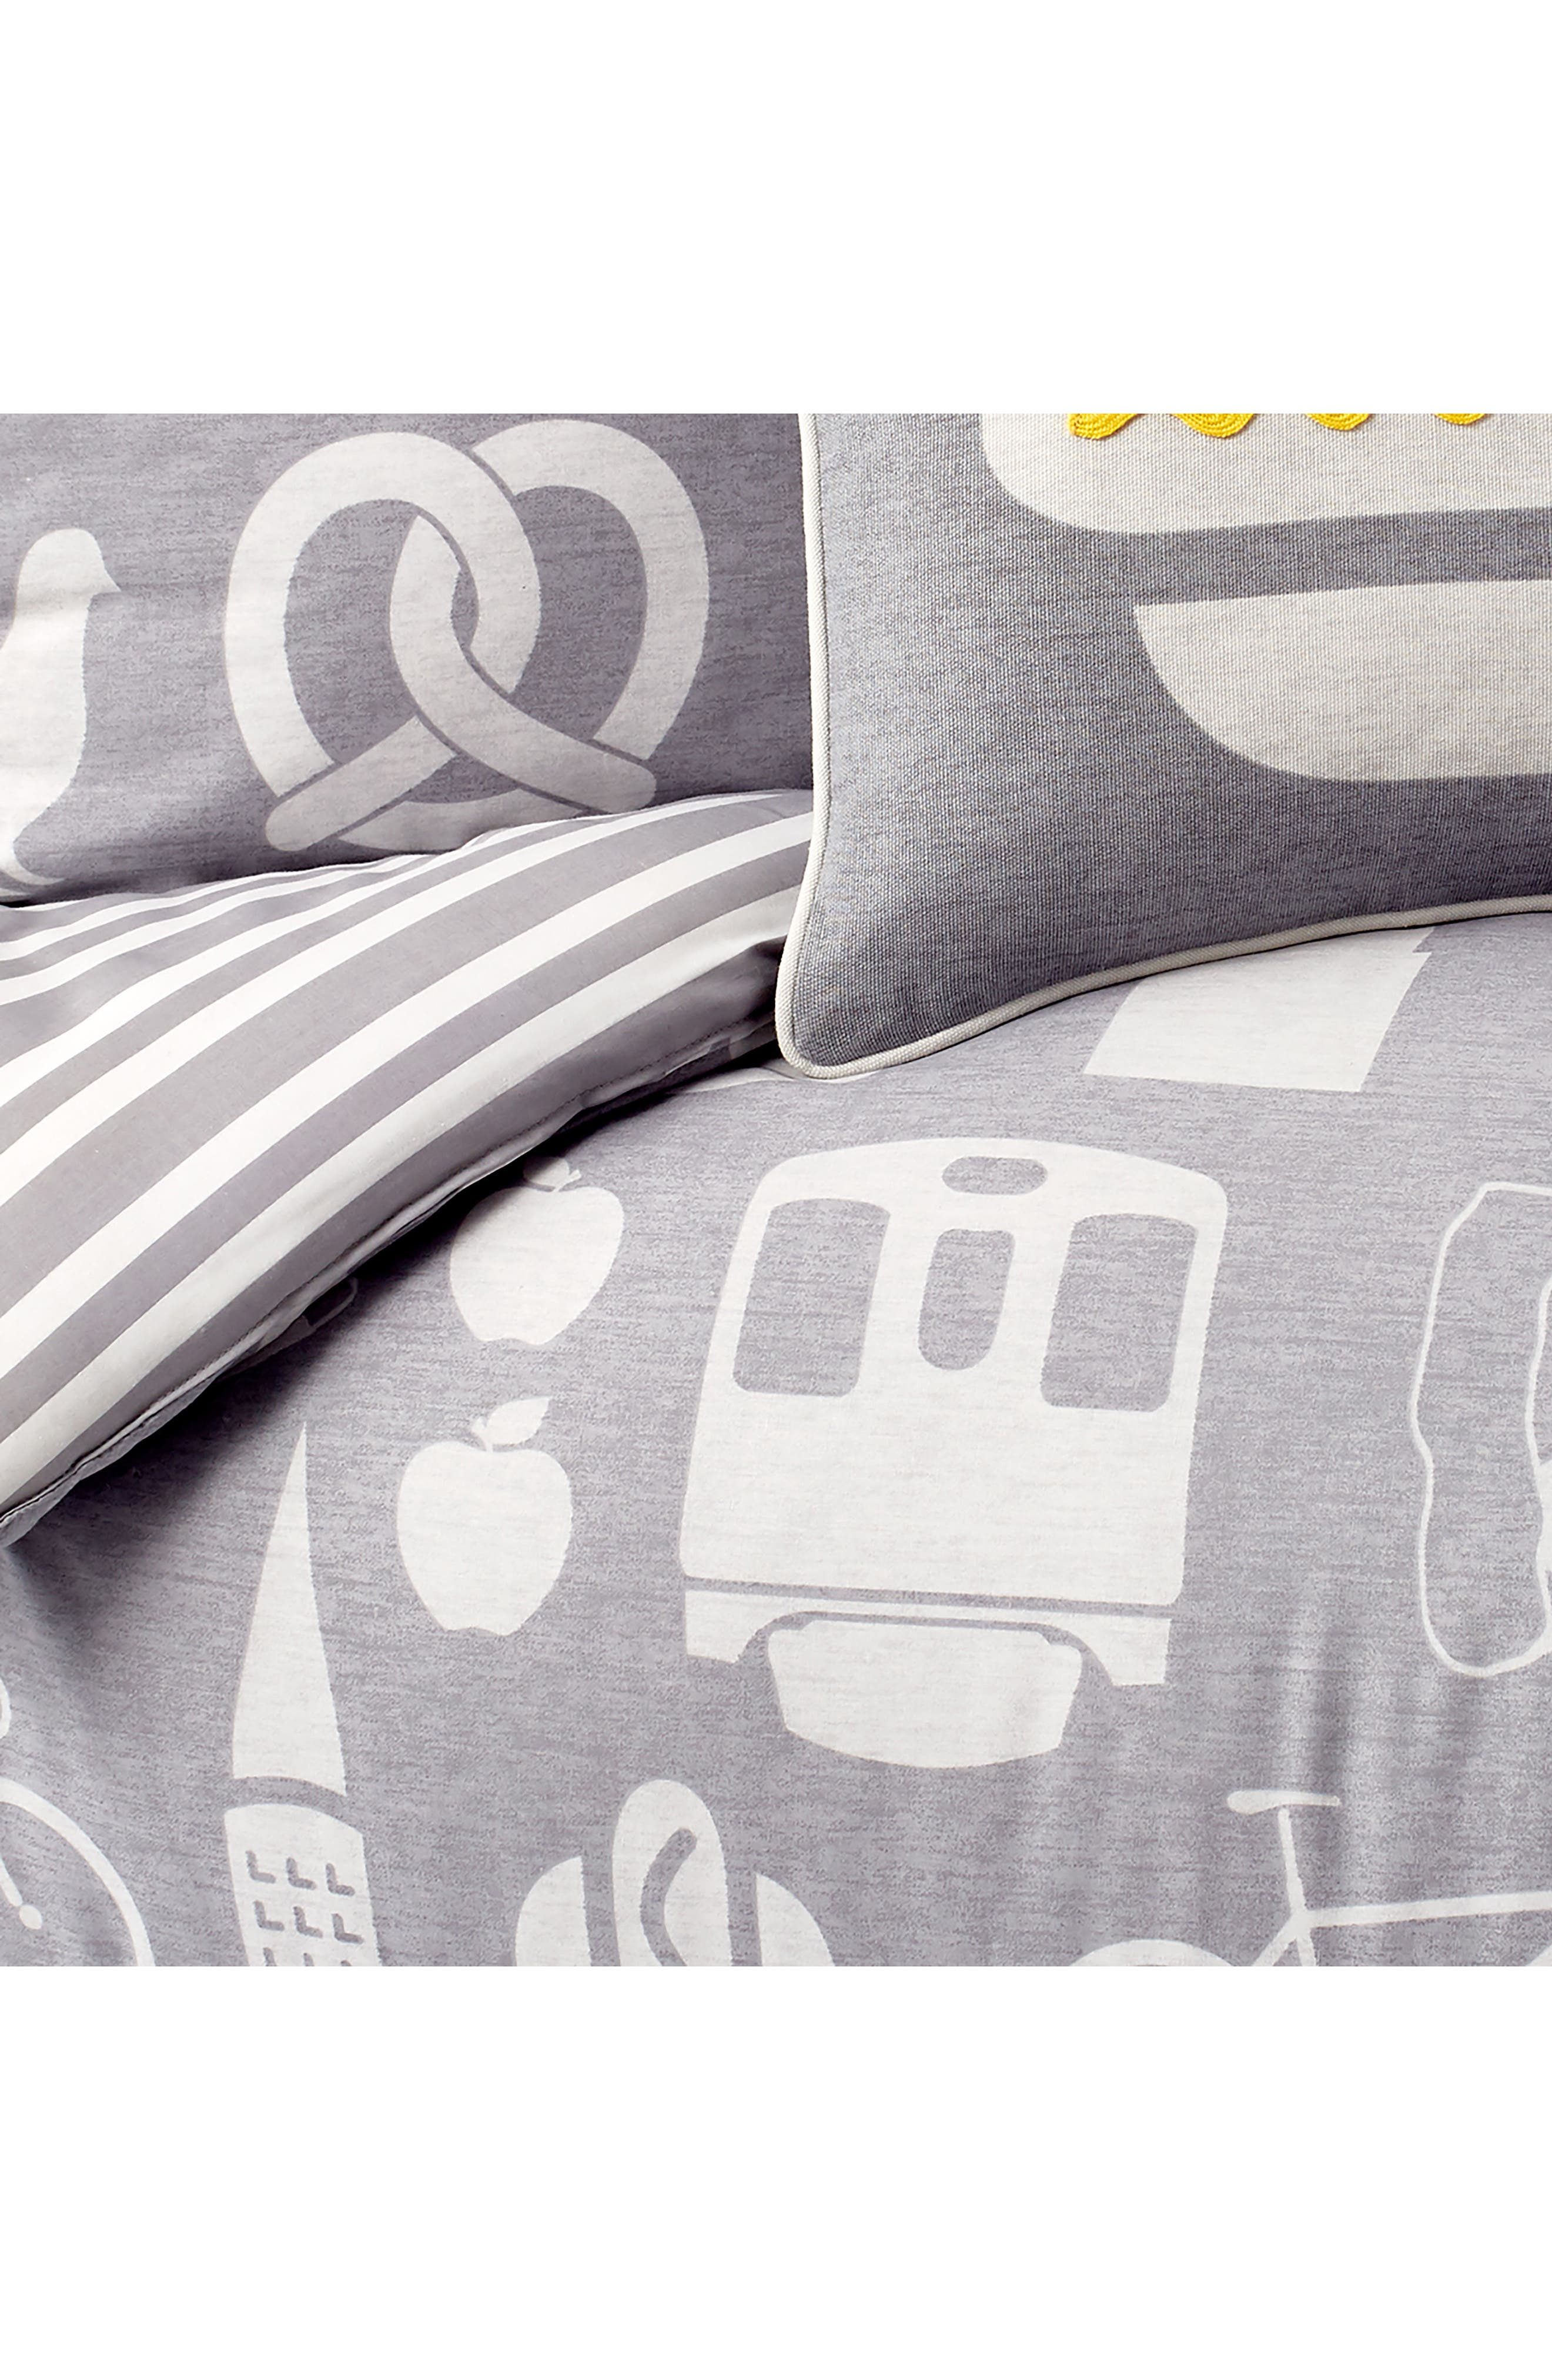 DKNY,                             NYC Comforter, Sham & Accent Pillow Set,                             Alternate thumbnail 2, color,                             GREY